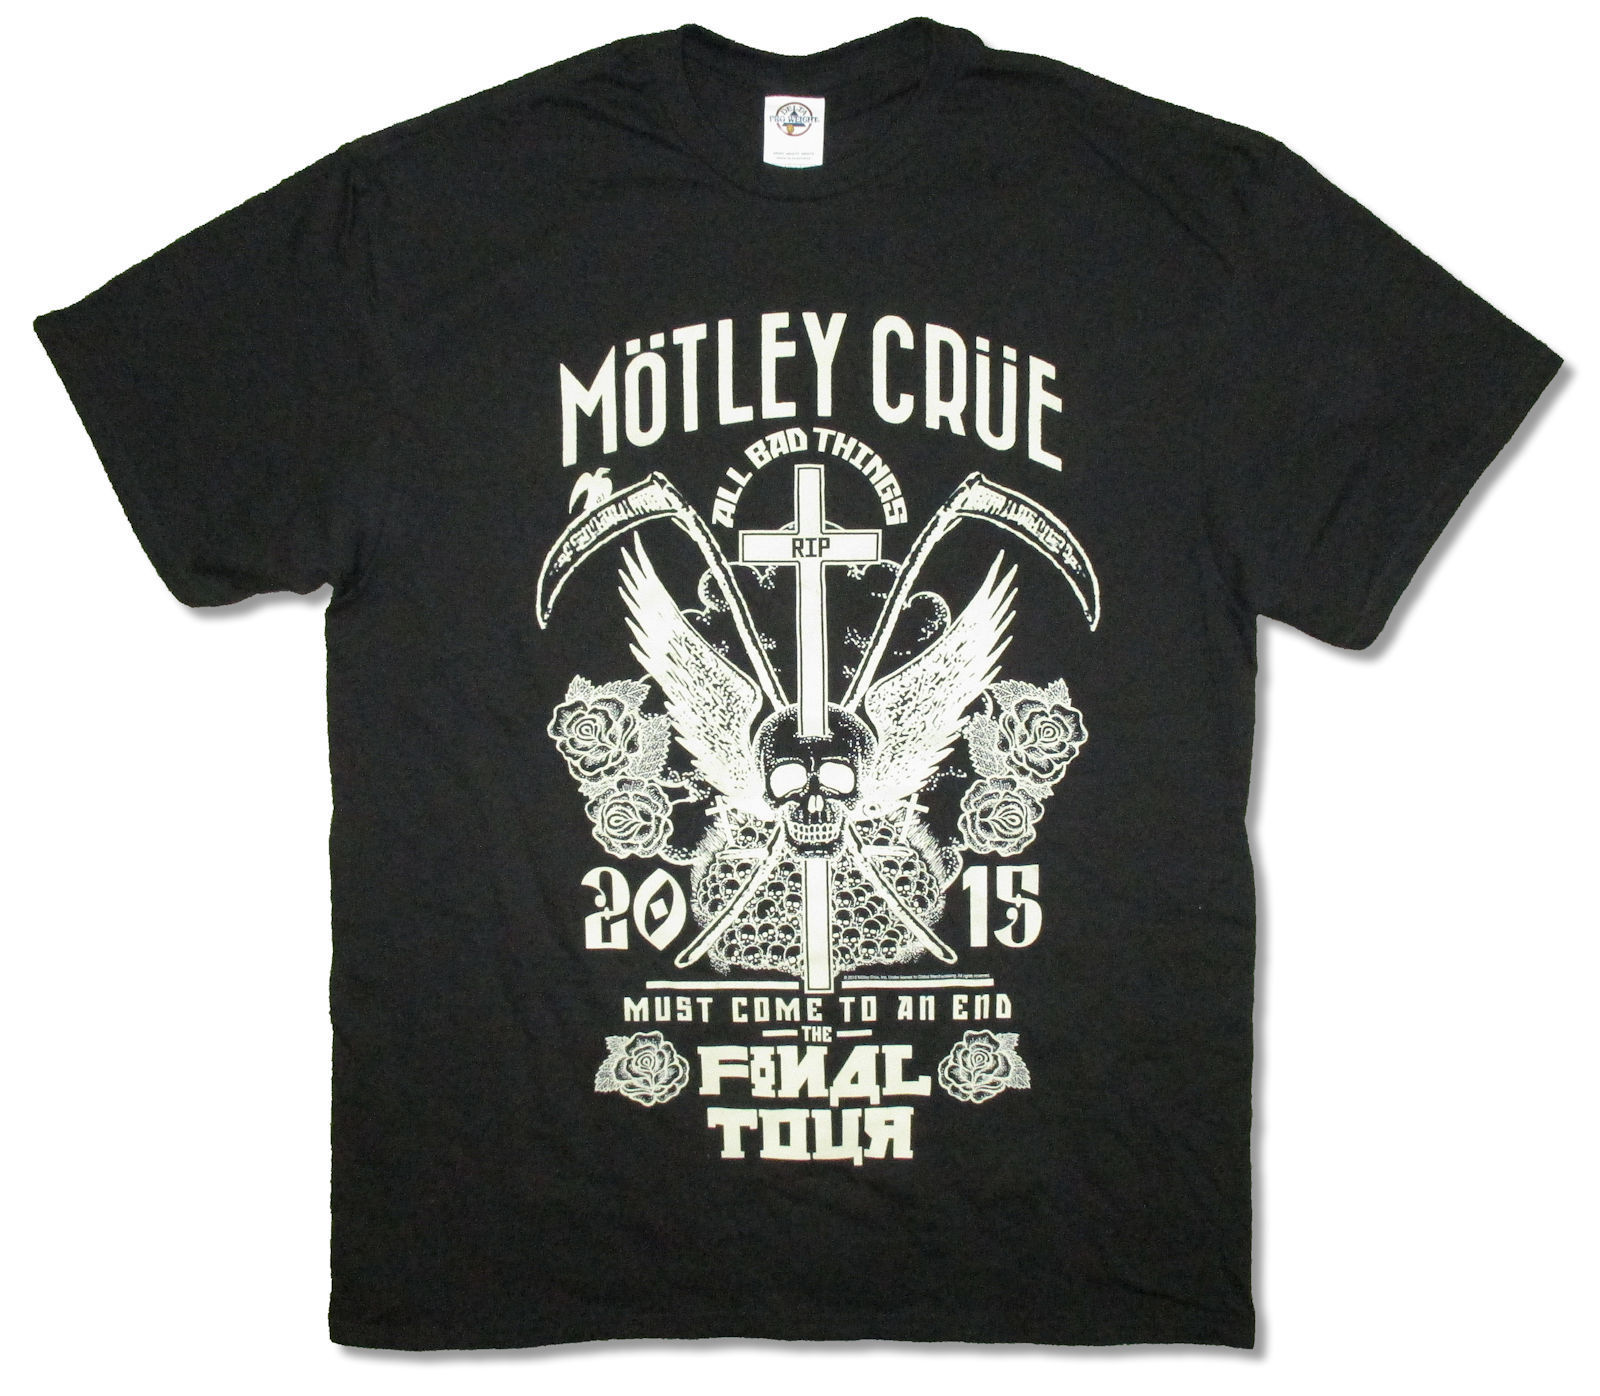 Motley Crue R.I.P. All Bad Things Tour 2015 Black T Shirt New Official Merch Stranger Things Design T Shirt 2018 New